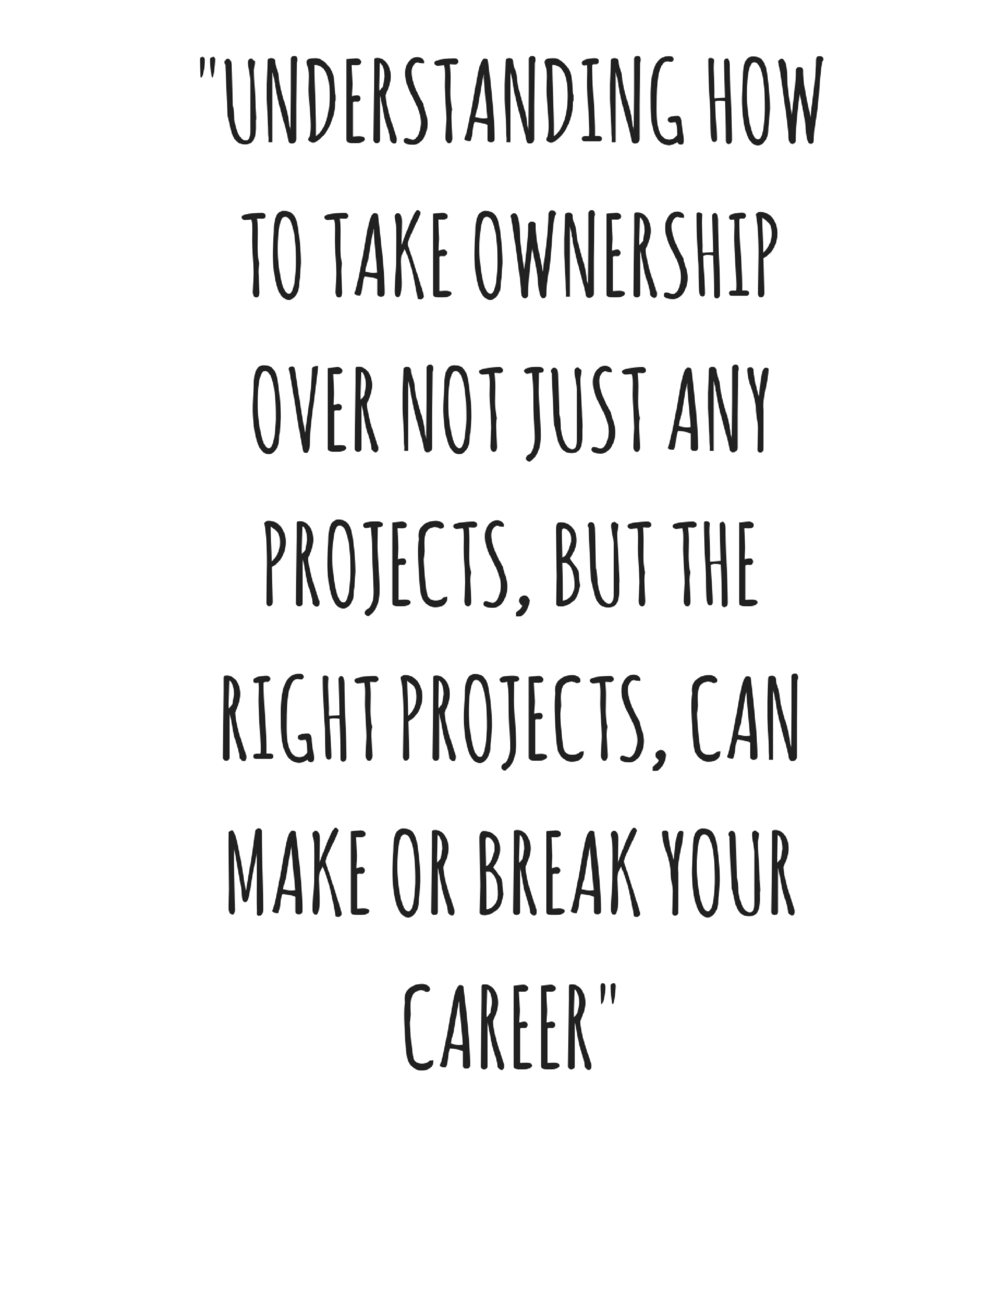 UNDERSTANDING HOW TO TAKE OWNERSHIP OVER NOT JUST ANYH PROJECTS, BUT THE RIGHT PROJECTS, CAN MAKE OR BREAK YOUR CAREER. (5).png